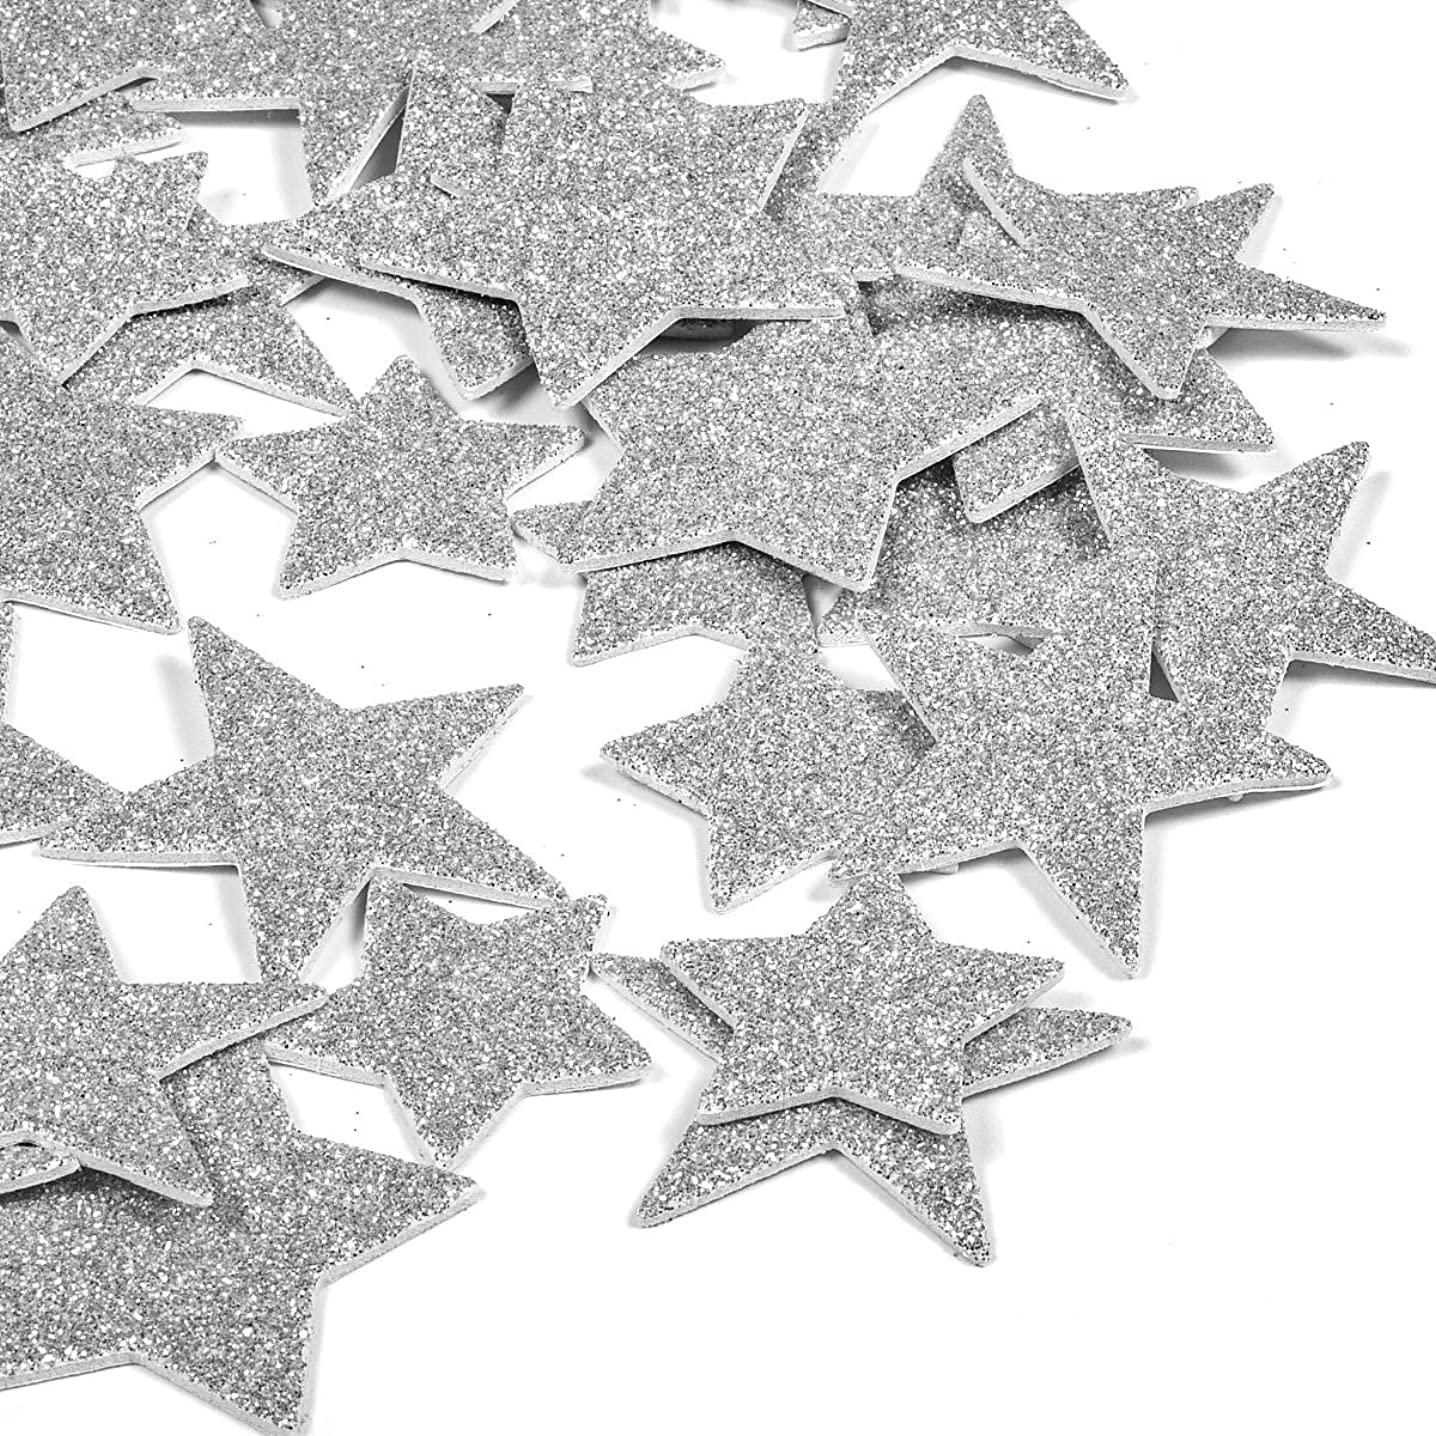 6 Pack Foam Star Stickers Glitter 3D Silver Letter Stickers for Kids Girls,Cute Photo Stickers Laptop Stickers Happy Planner Stickers for DIY Arts and Crafts,Daily Planner (Silver Star)